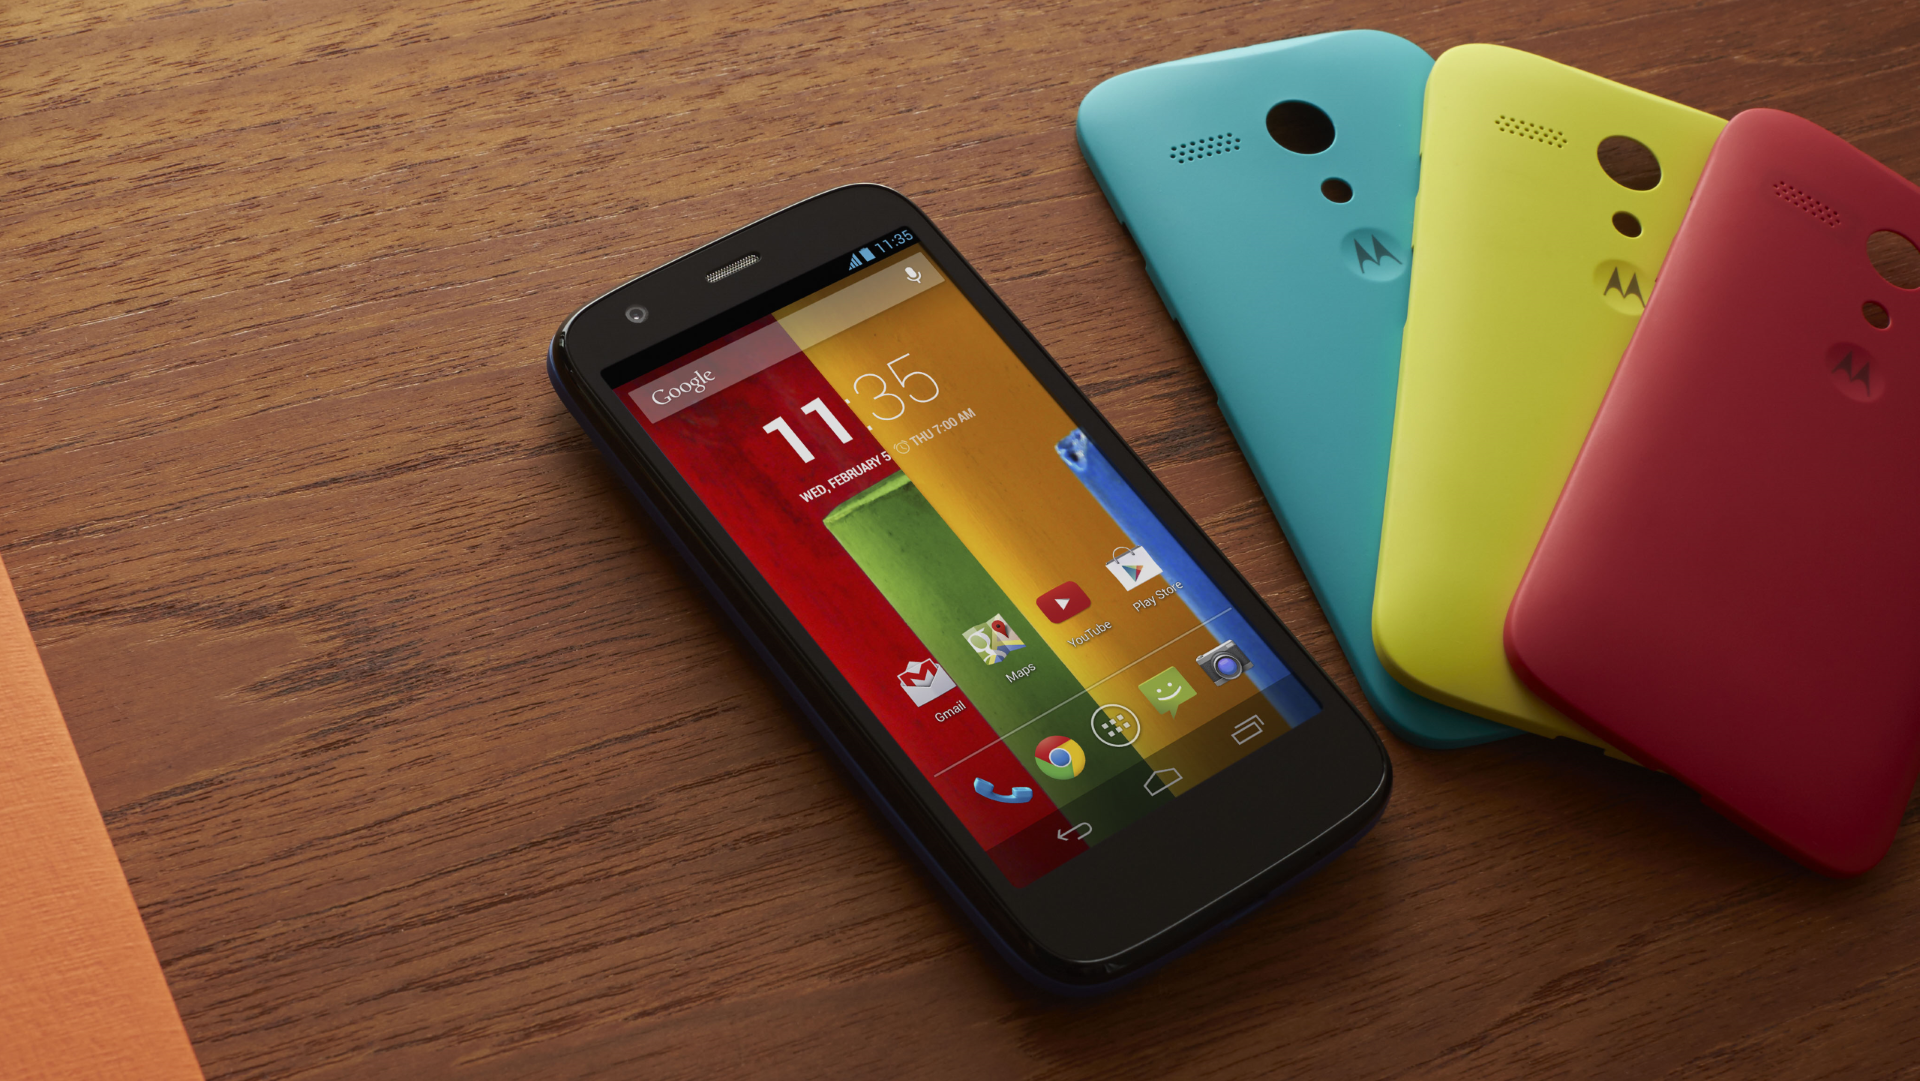 Moto G review (1st Gen) - Still a great budget choice for 4G